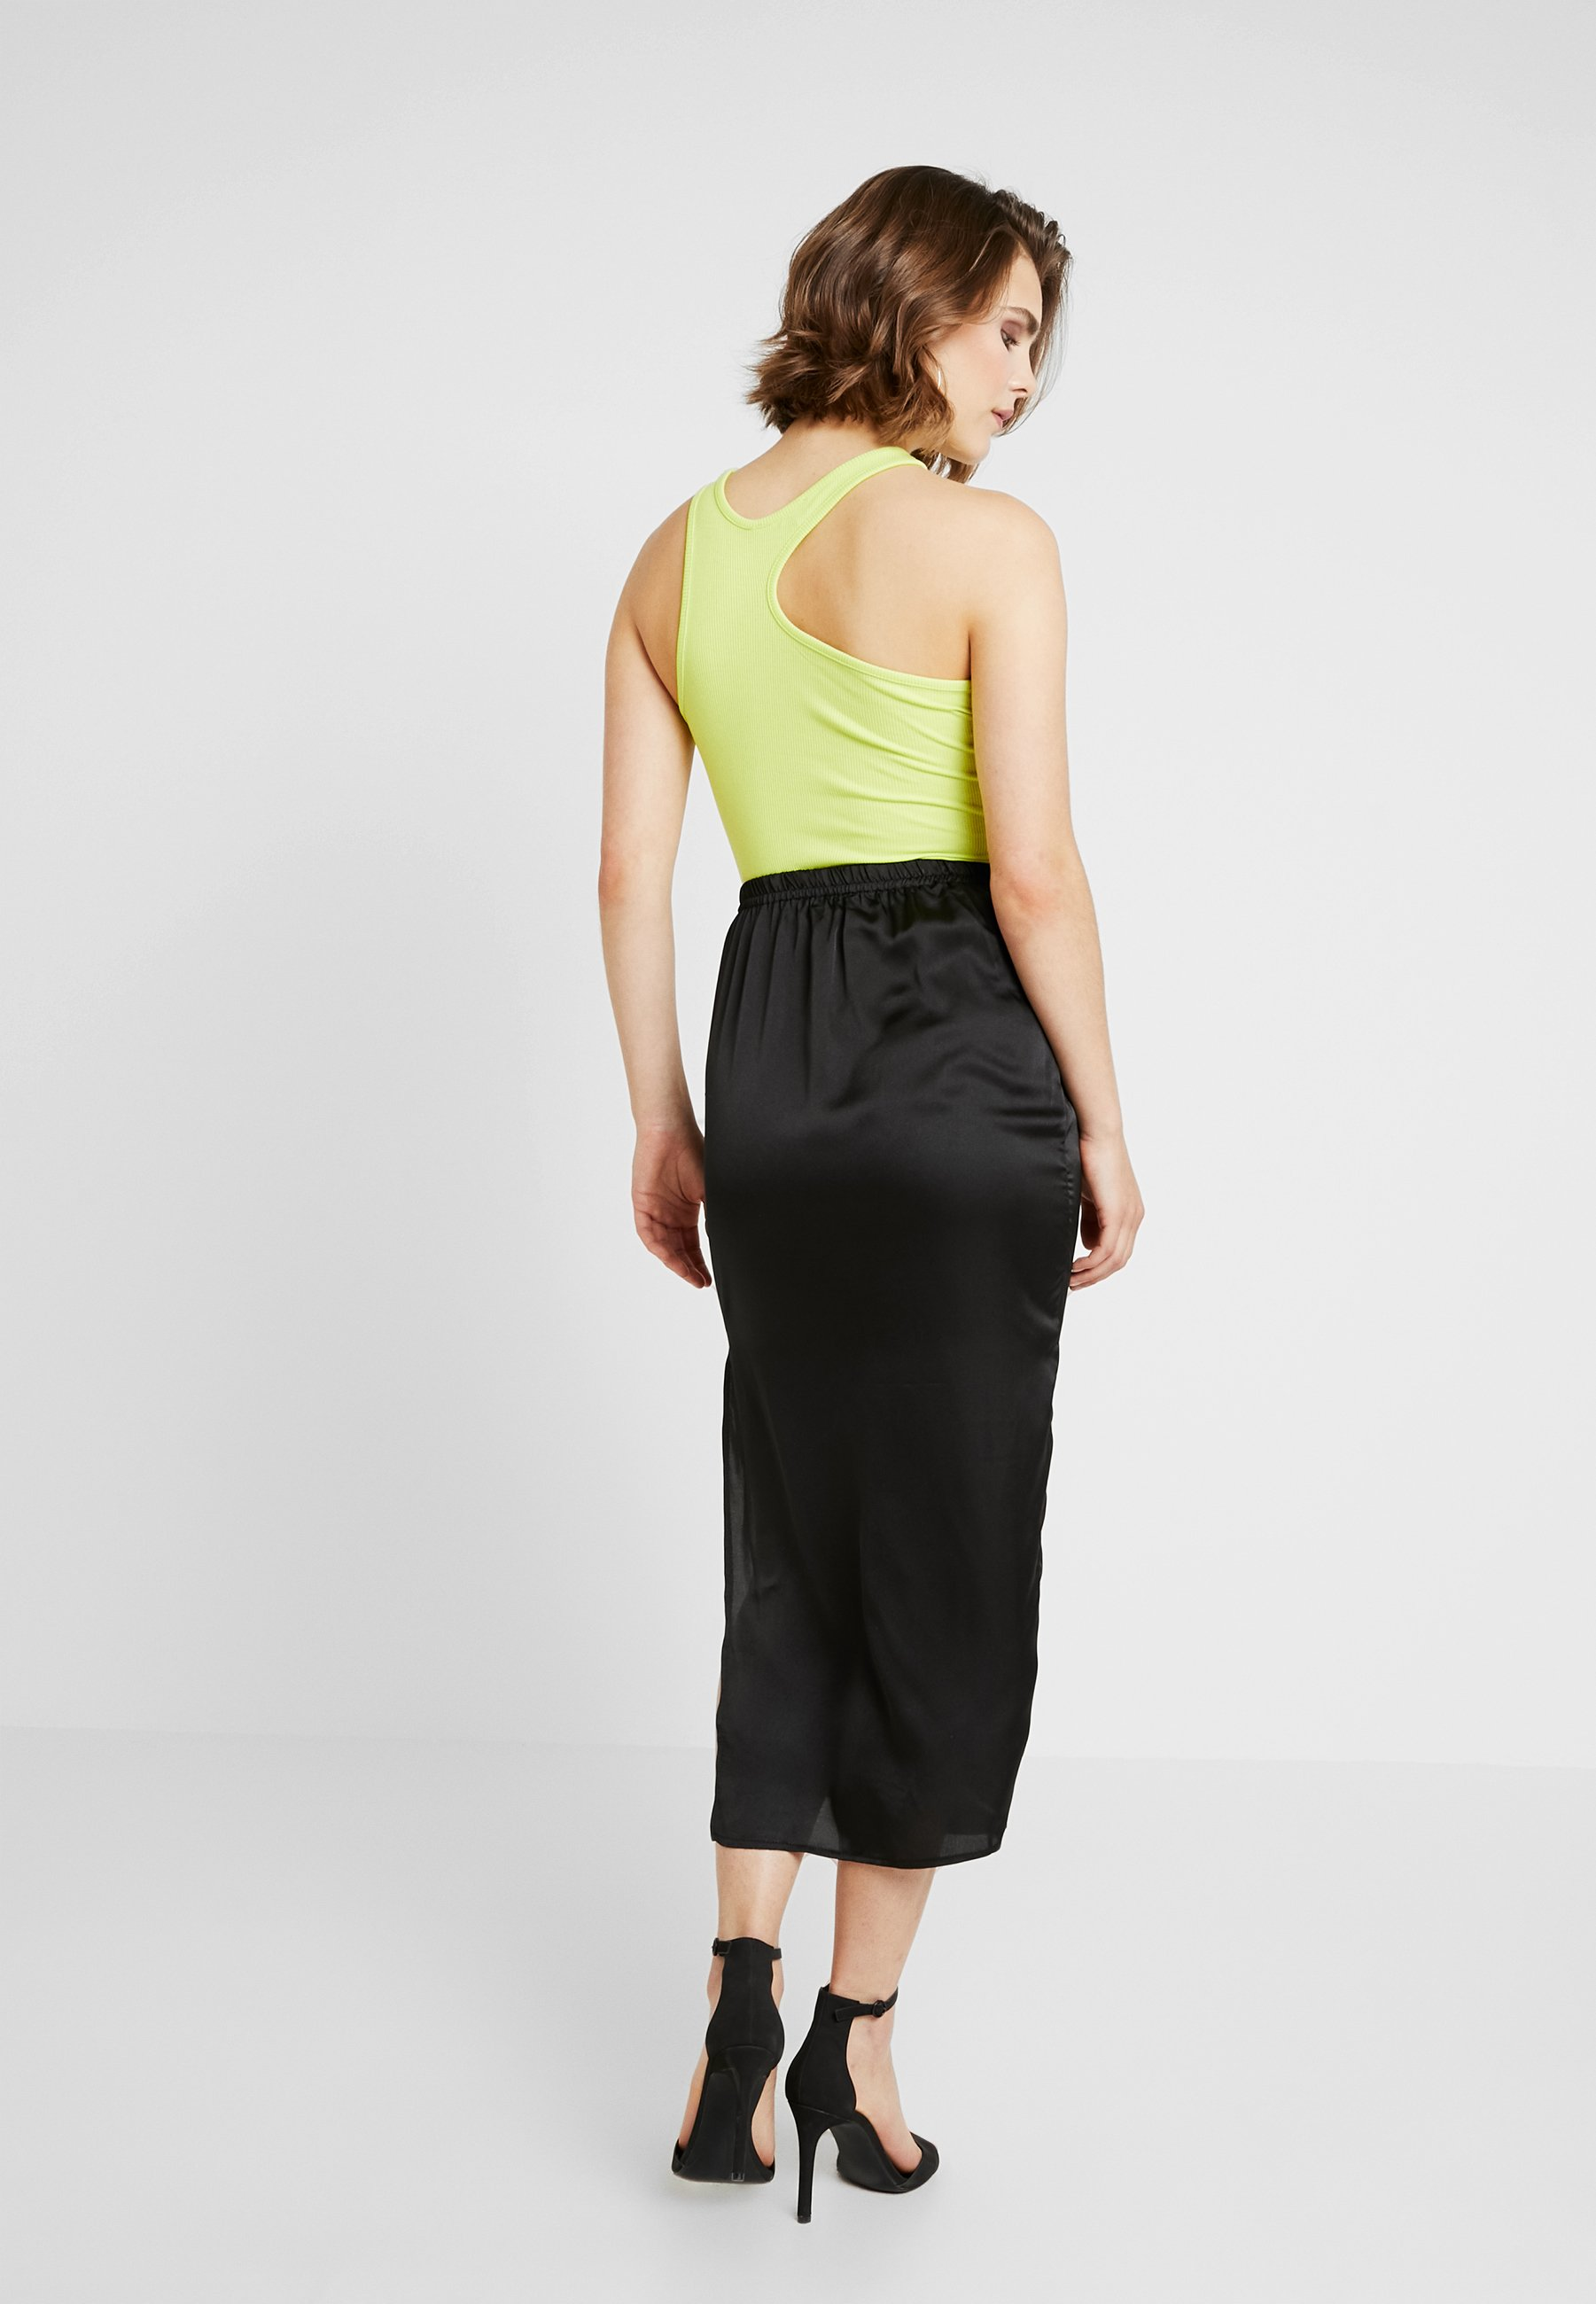 Black Midi Slip Missguided SkirtJupe Crayon zMqUVSp